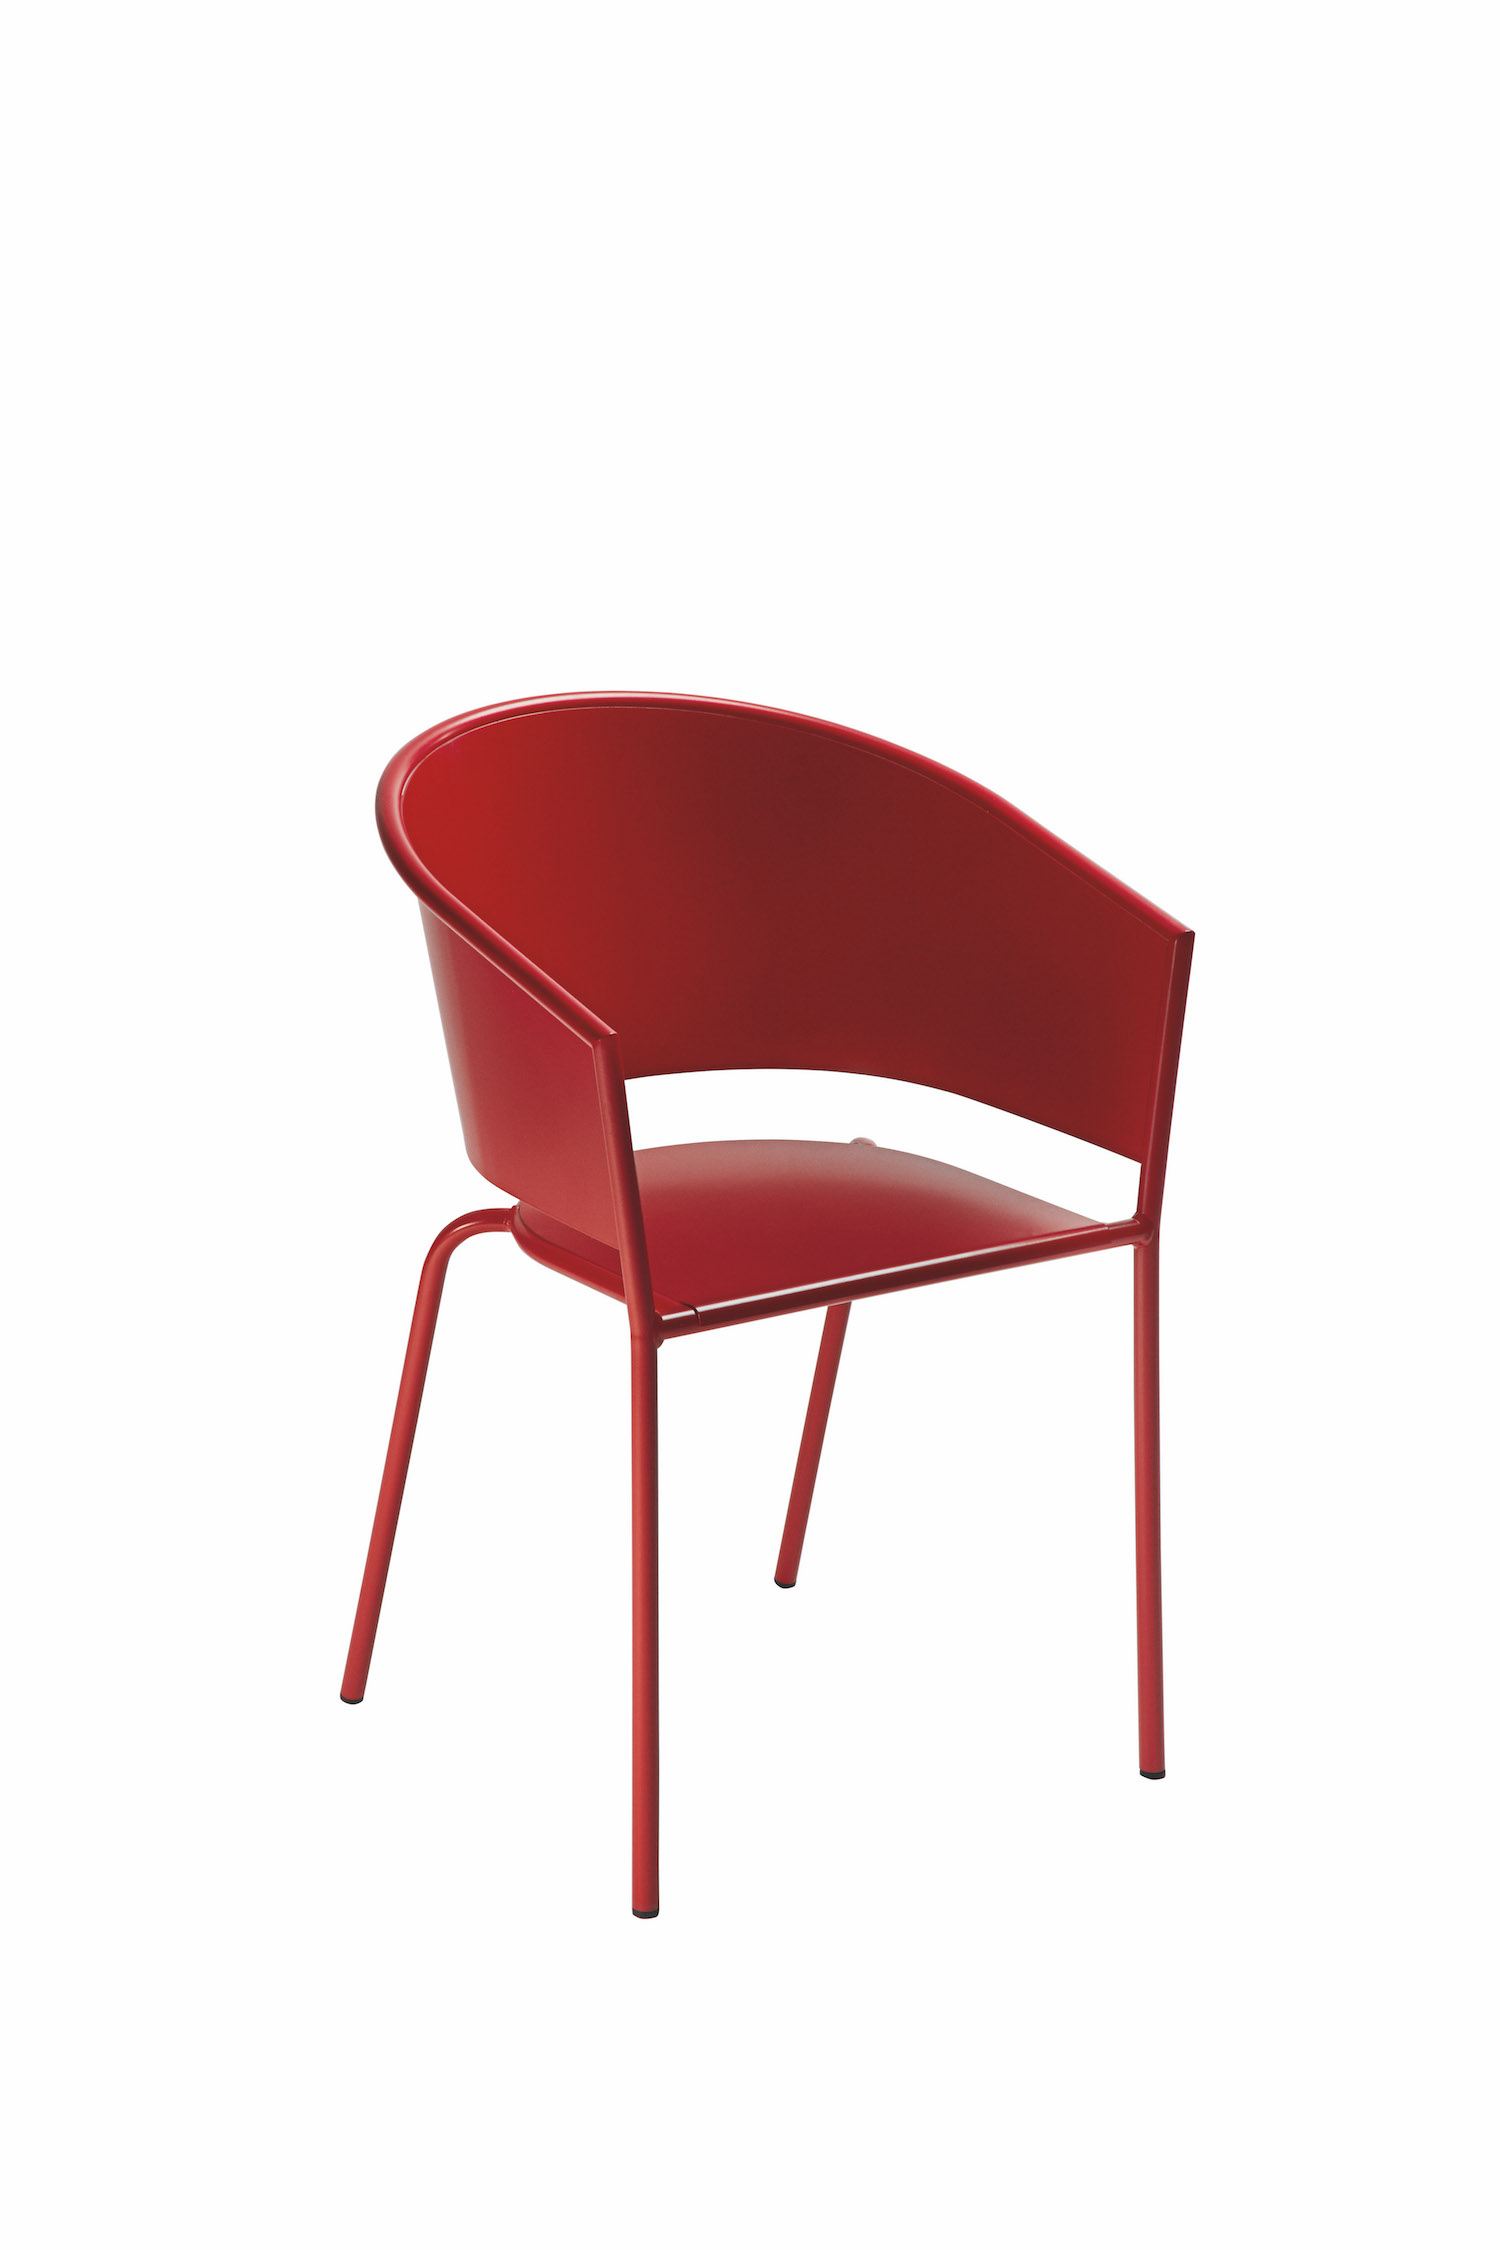 CHRISTOPHE PILLET - TNP armchair_2.jpg